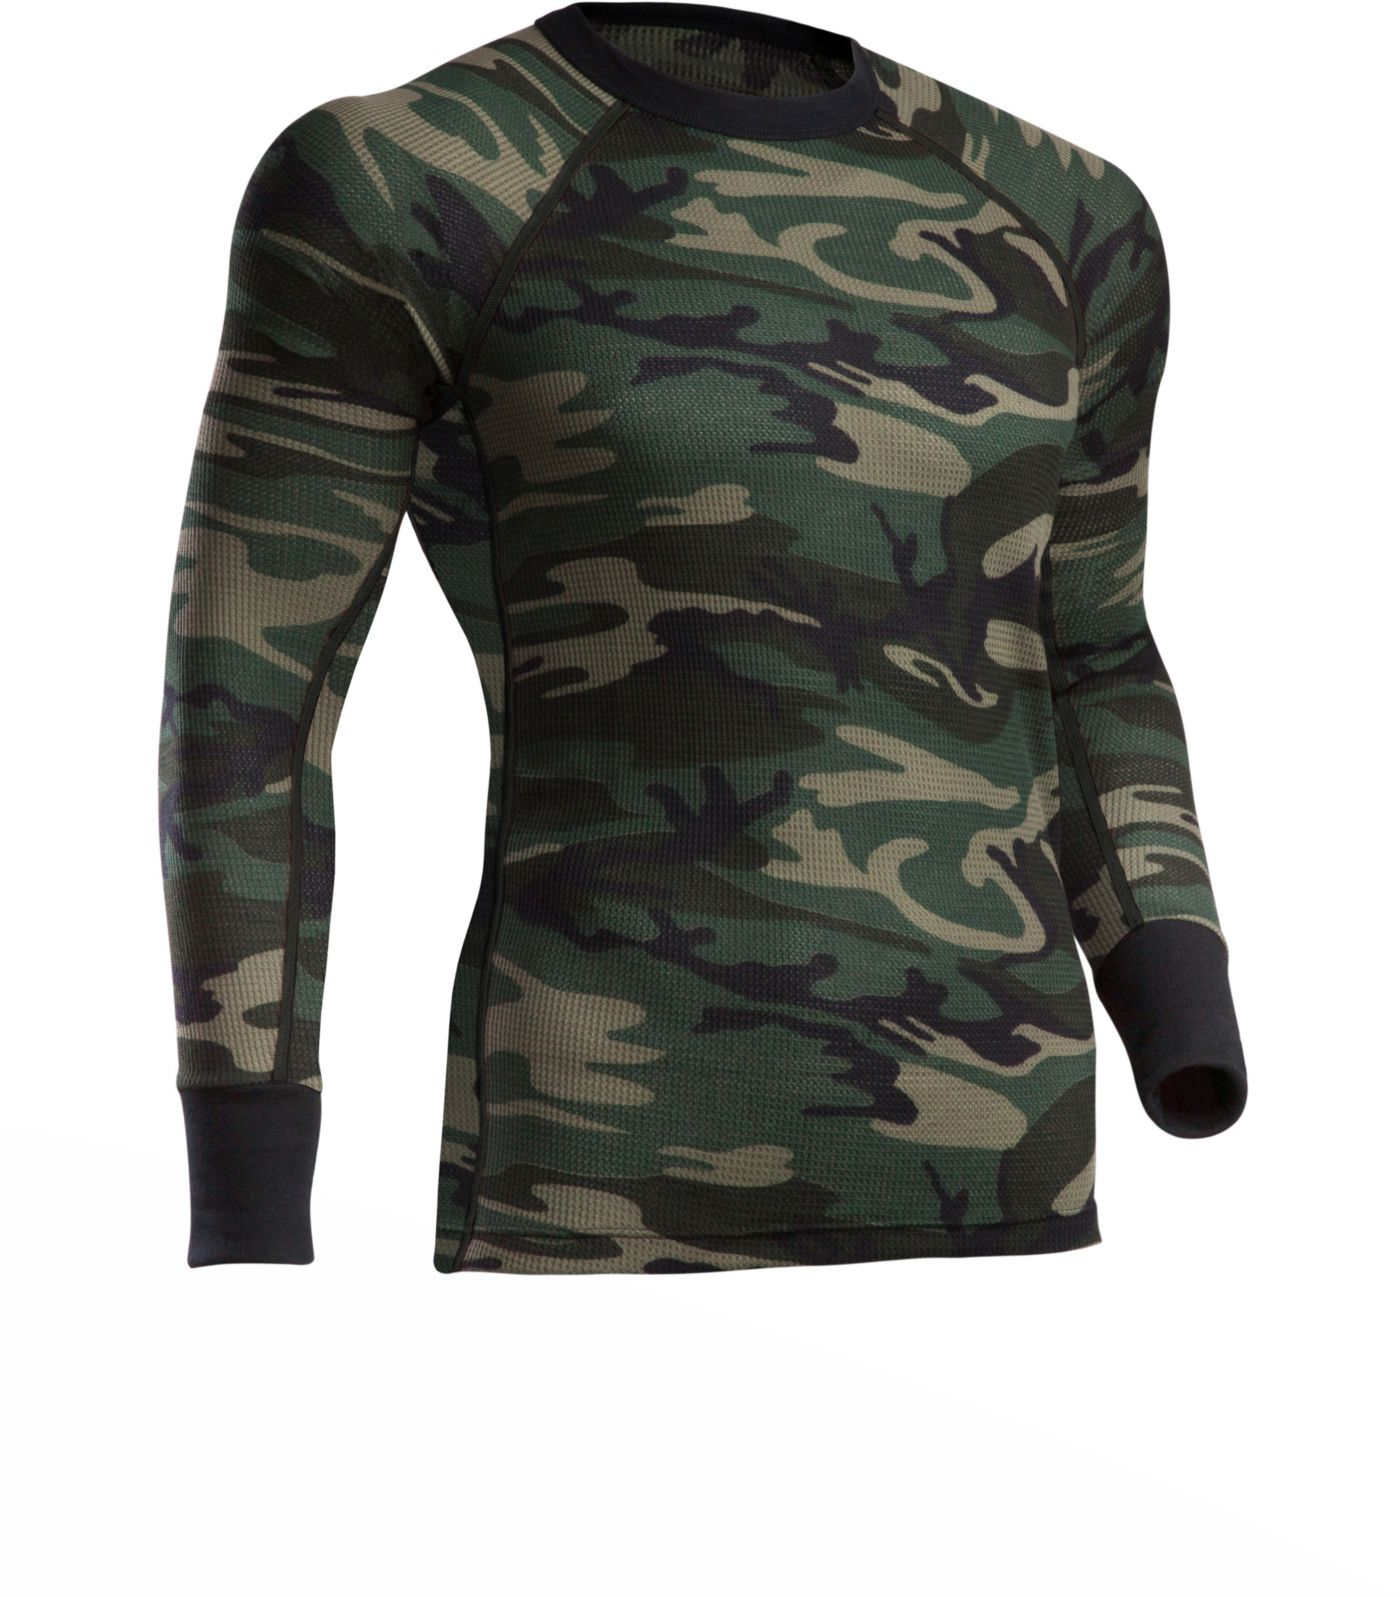 ColdPruf Men's Woodland Camo Thermal Top